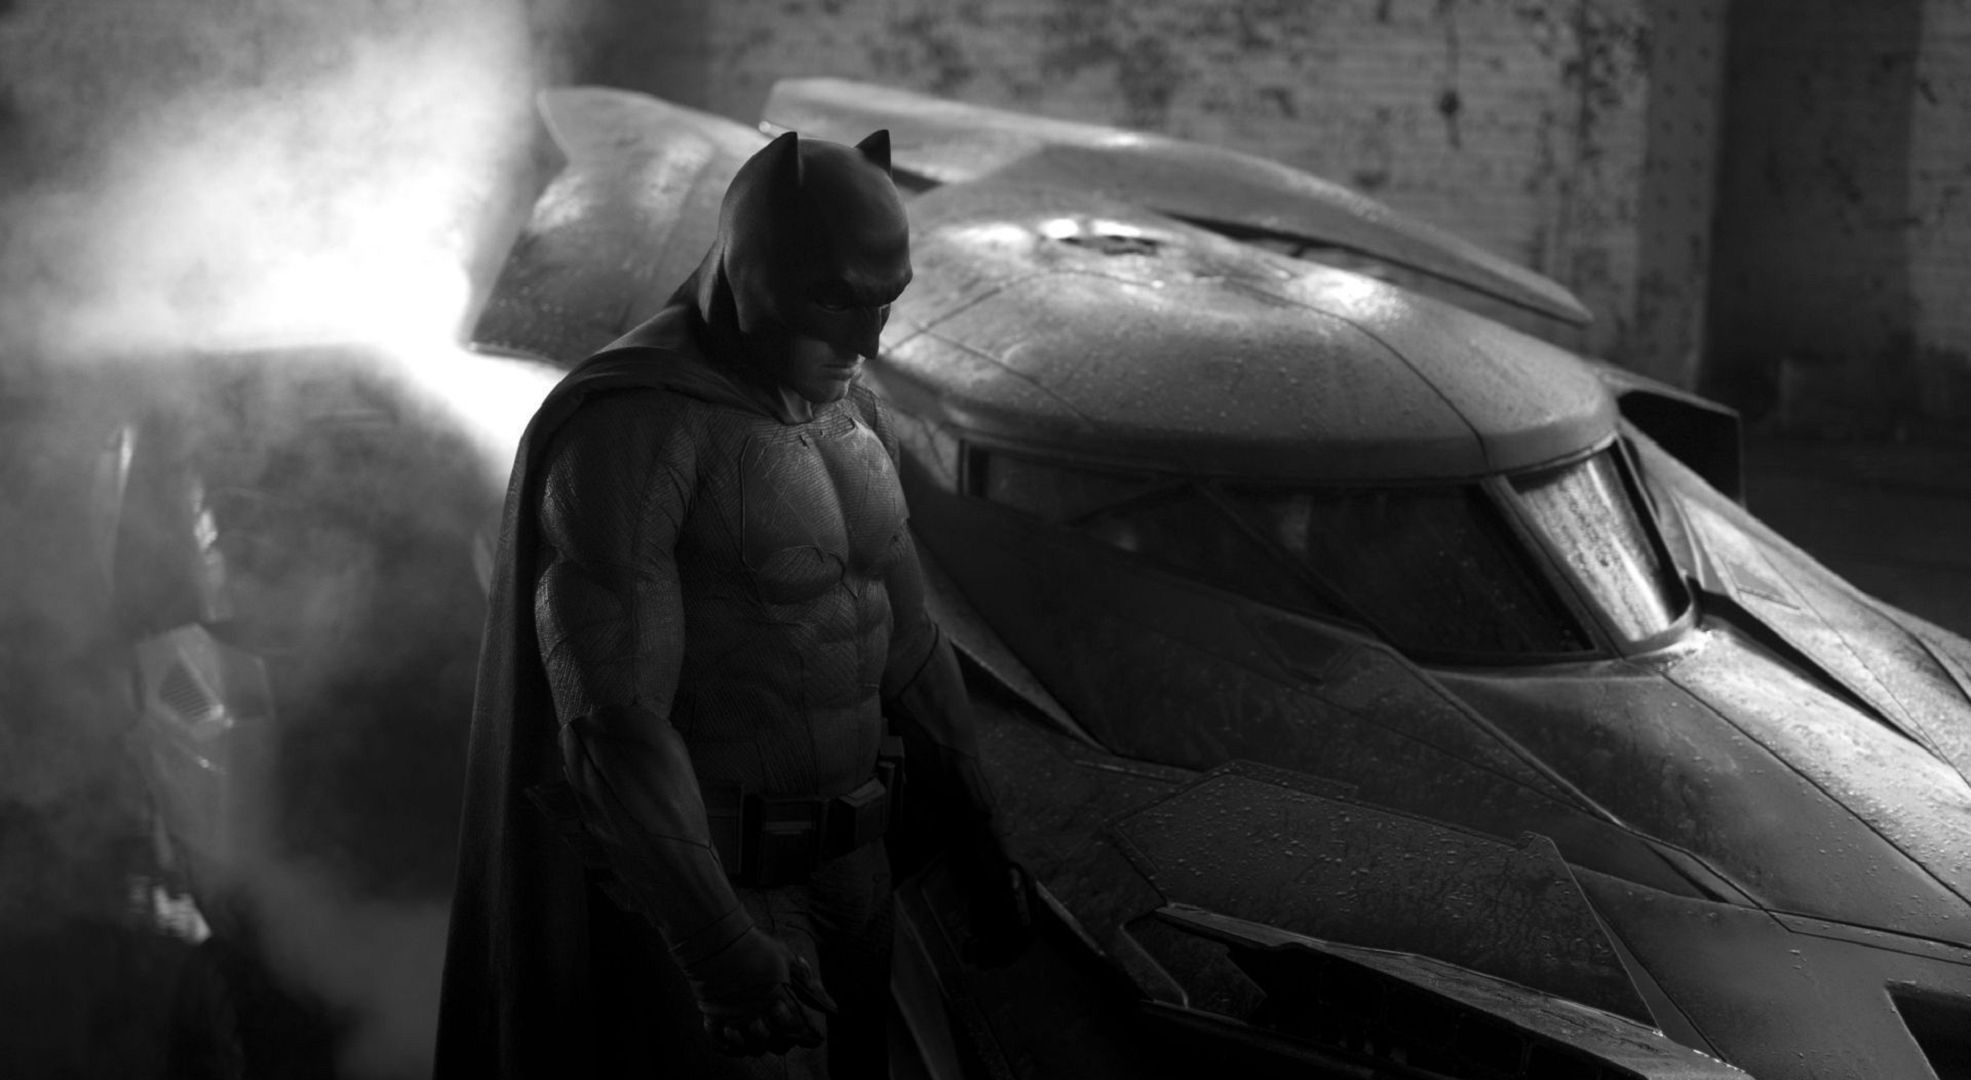 Batmobile Widescreen